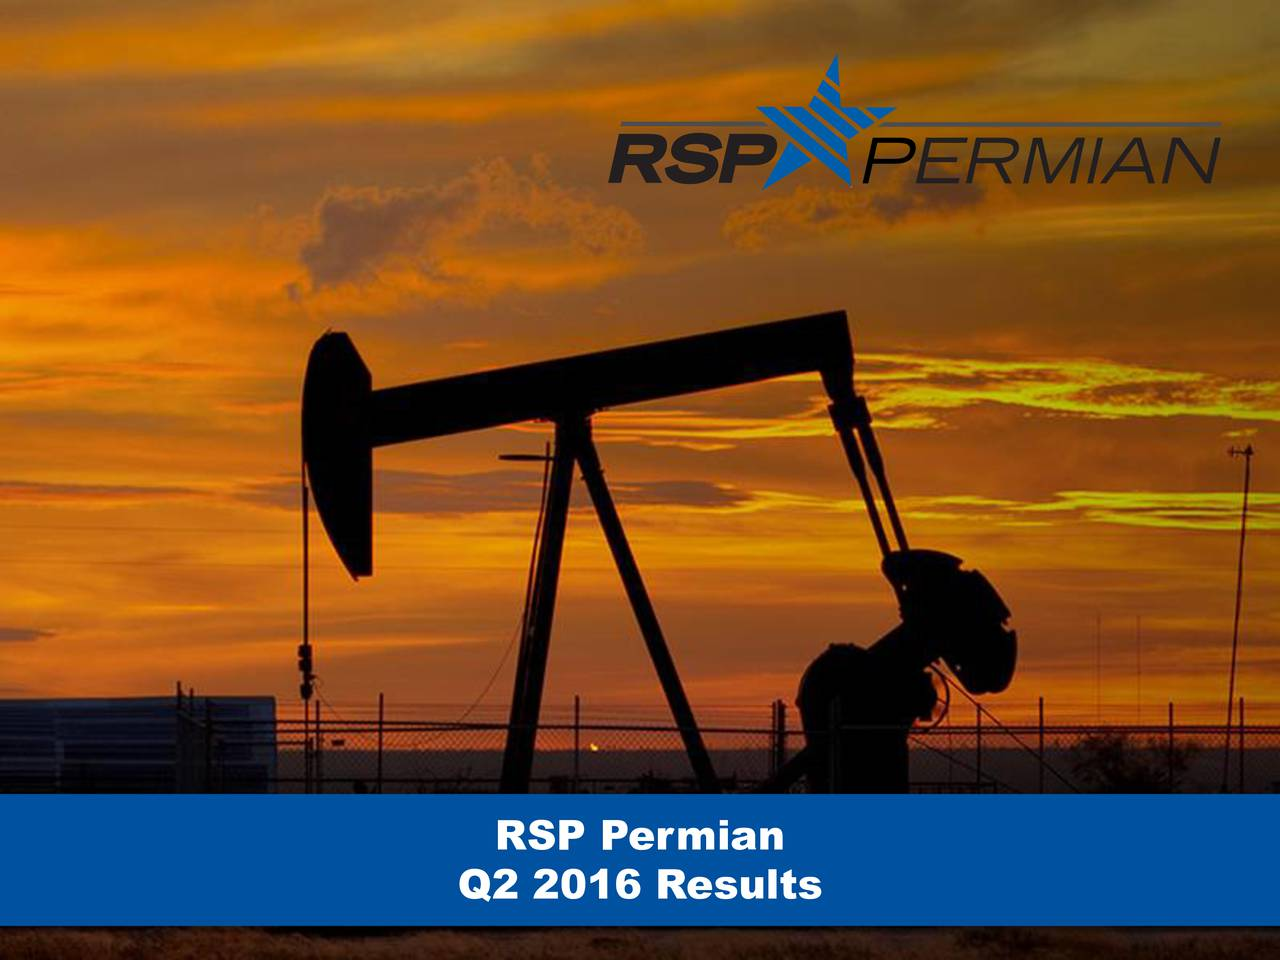 Q2 2016 Results